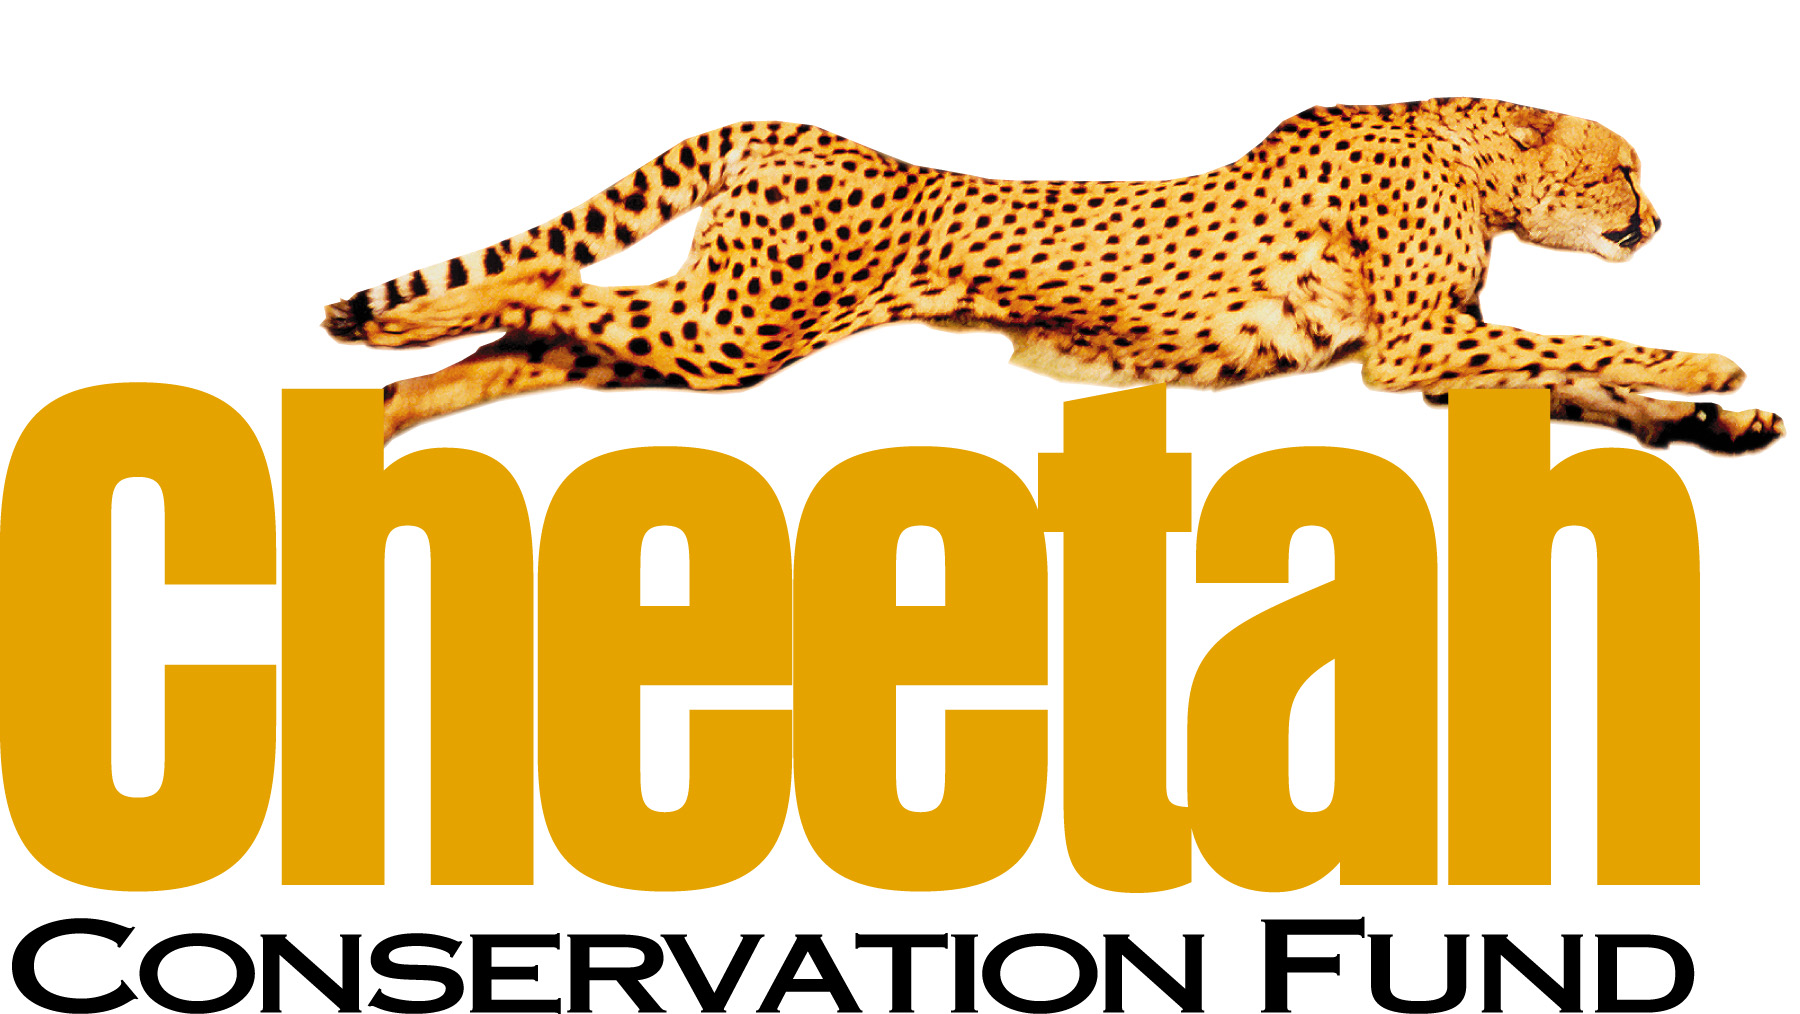 logo for Cheetah Conservation Fund